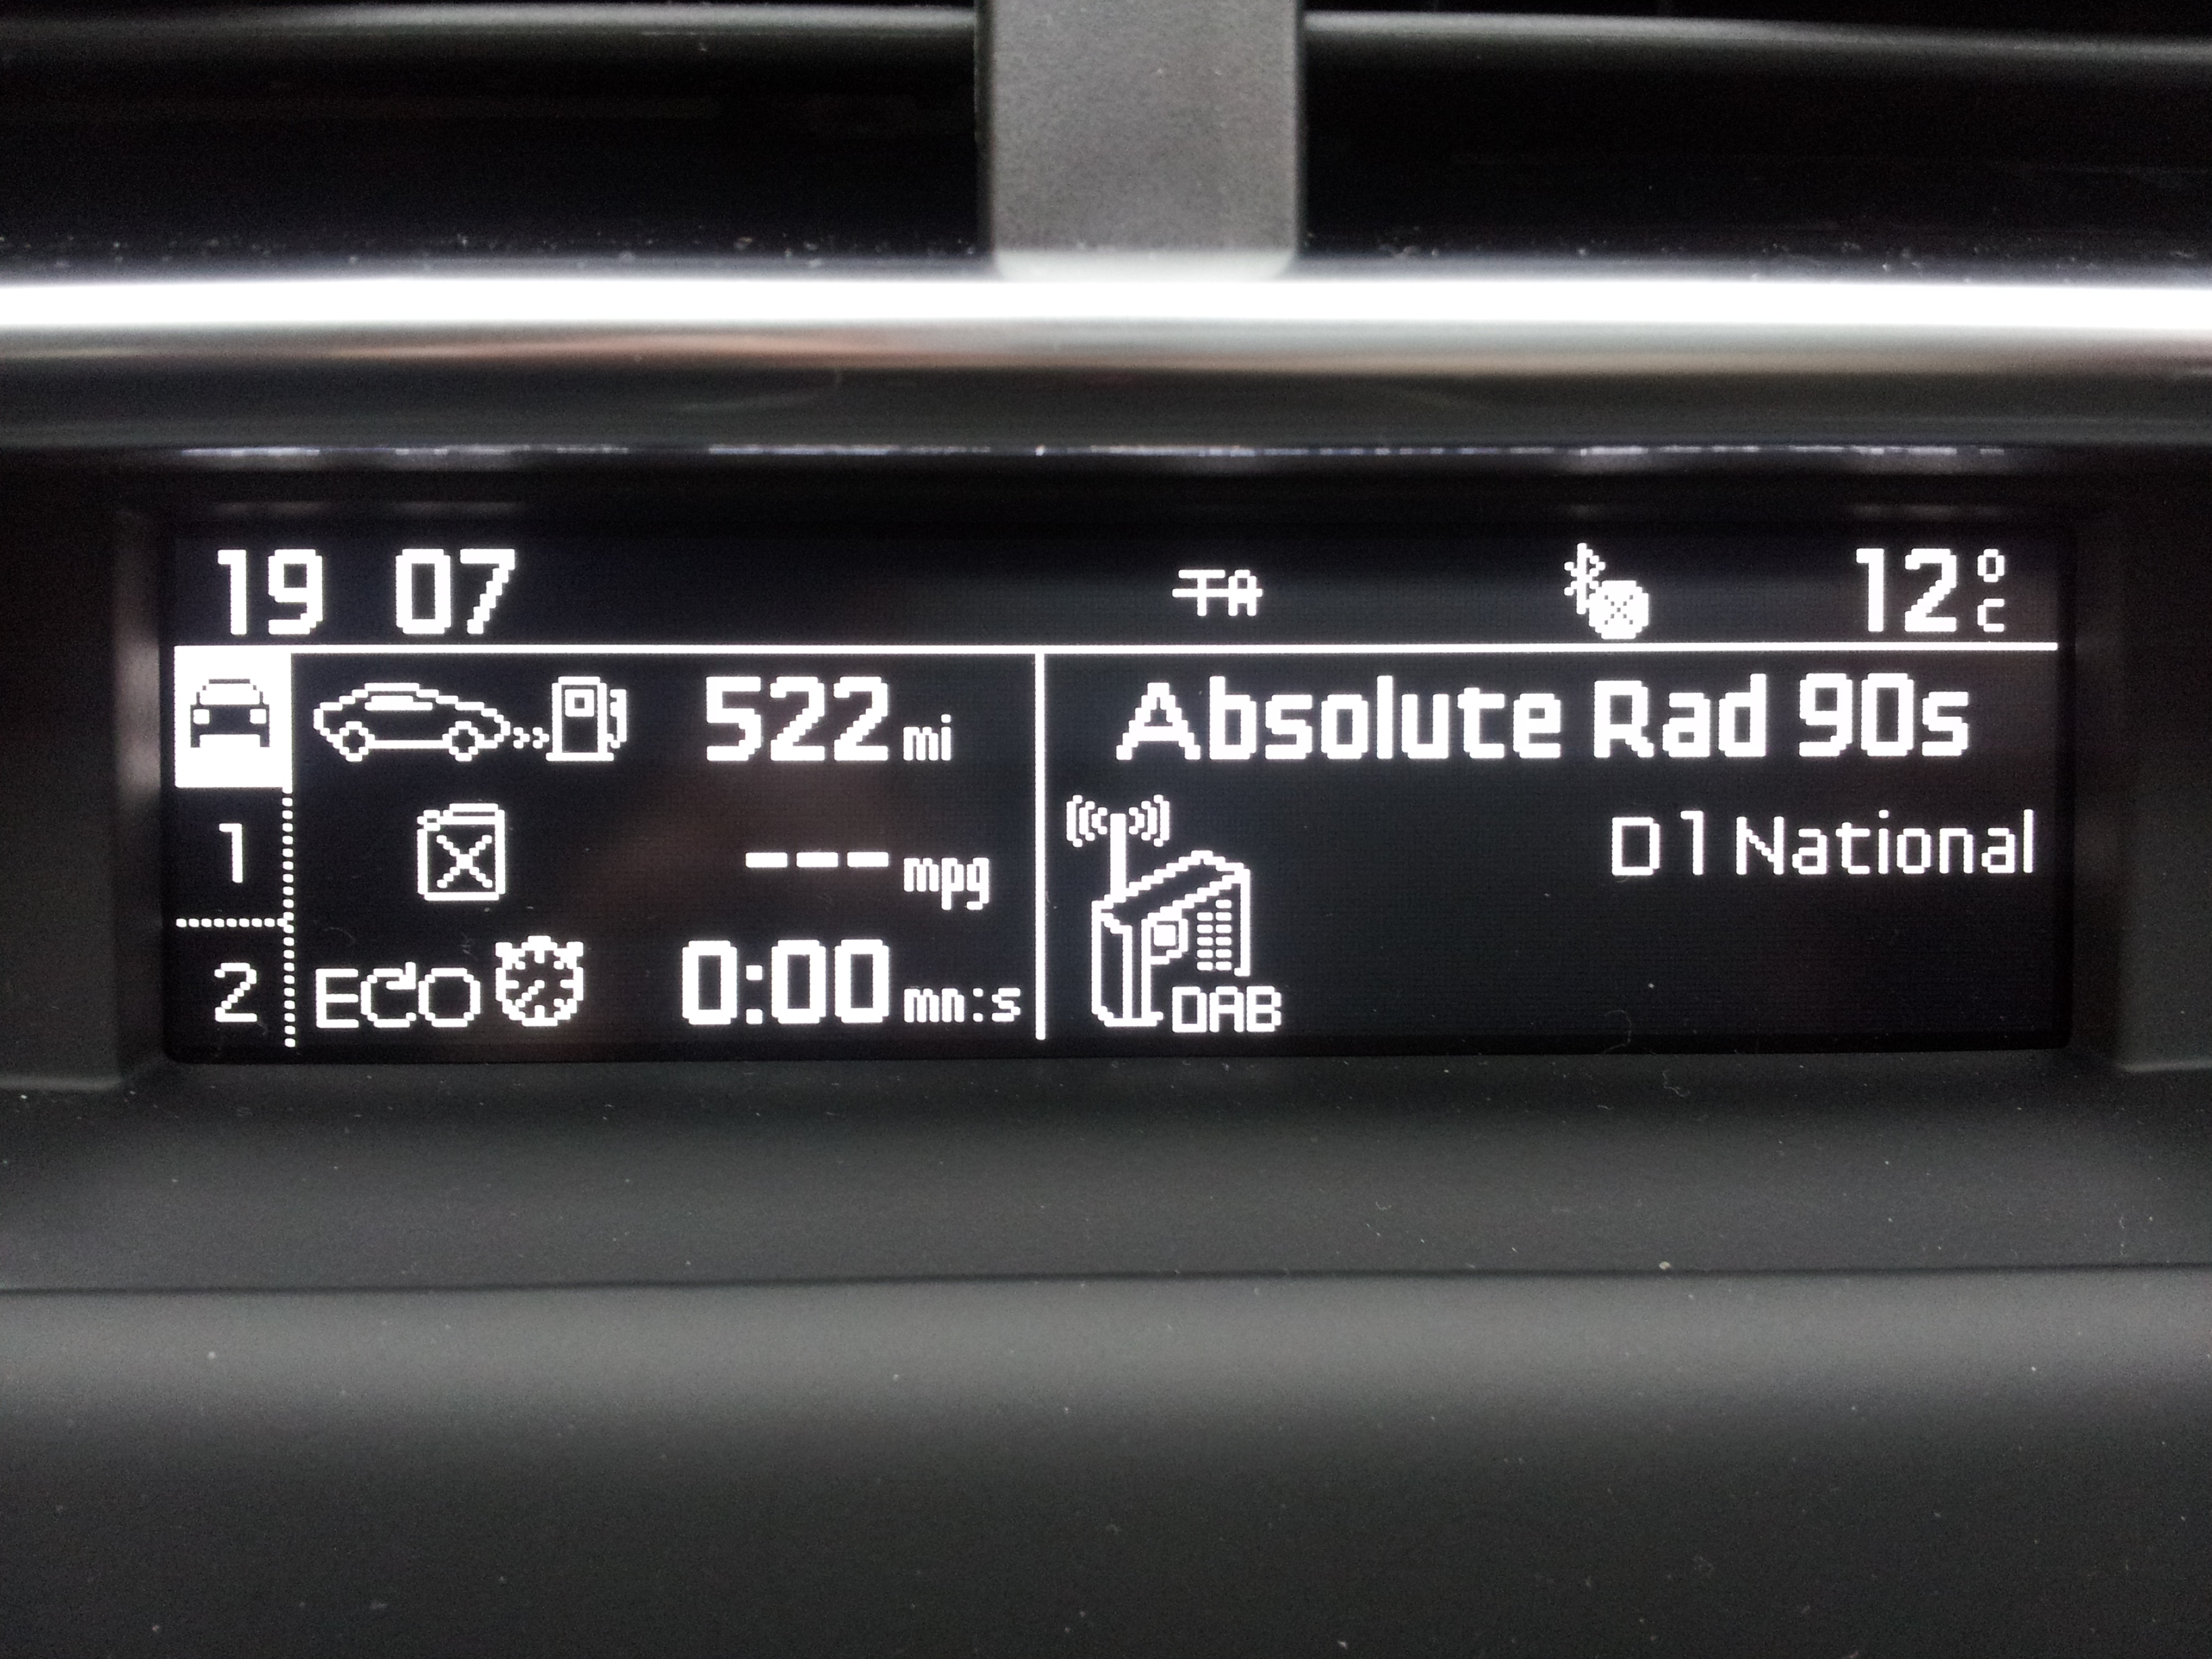 Forums / ICE / Sat Nav/Bluetooth etc  / RD4 substitution with RD45